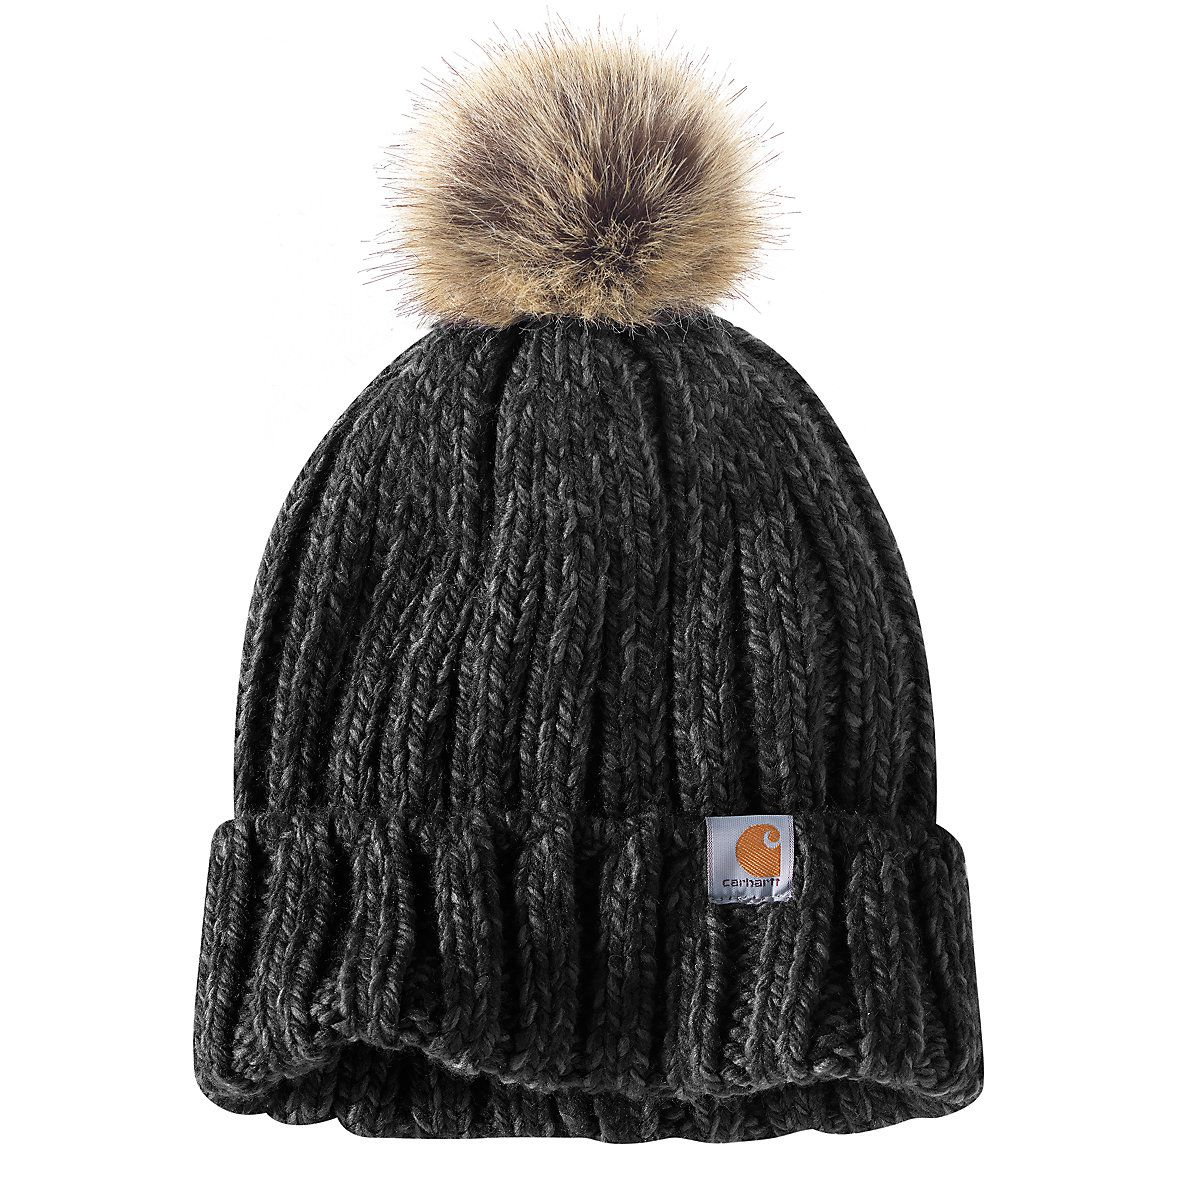 1f13c19b80c Shop the Millville Pom Hat for Women s at Carhartt.com for Women s Hats  that works as hard as you do.